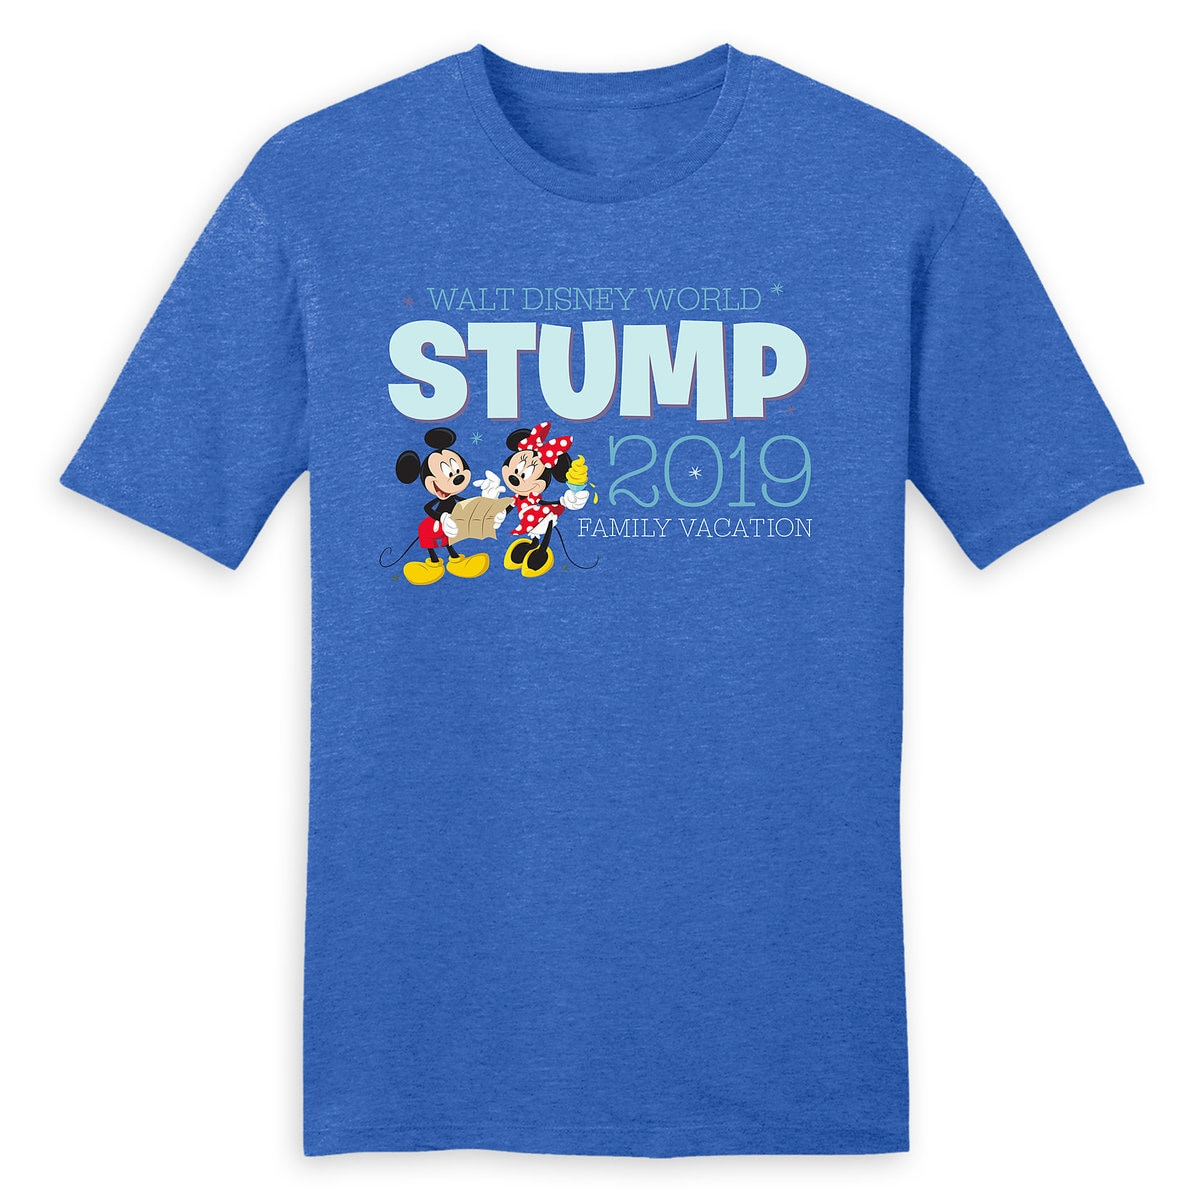 8c13ce4eb080 Product Image of Mickey and Minnie Mouse Family Vacation T-Shirt for Men -  Walt